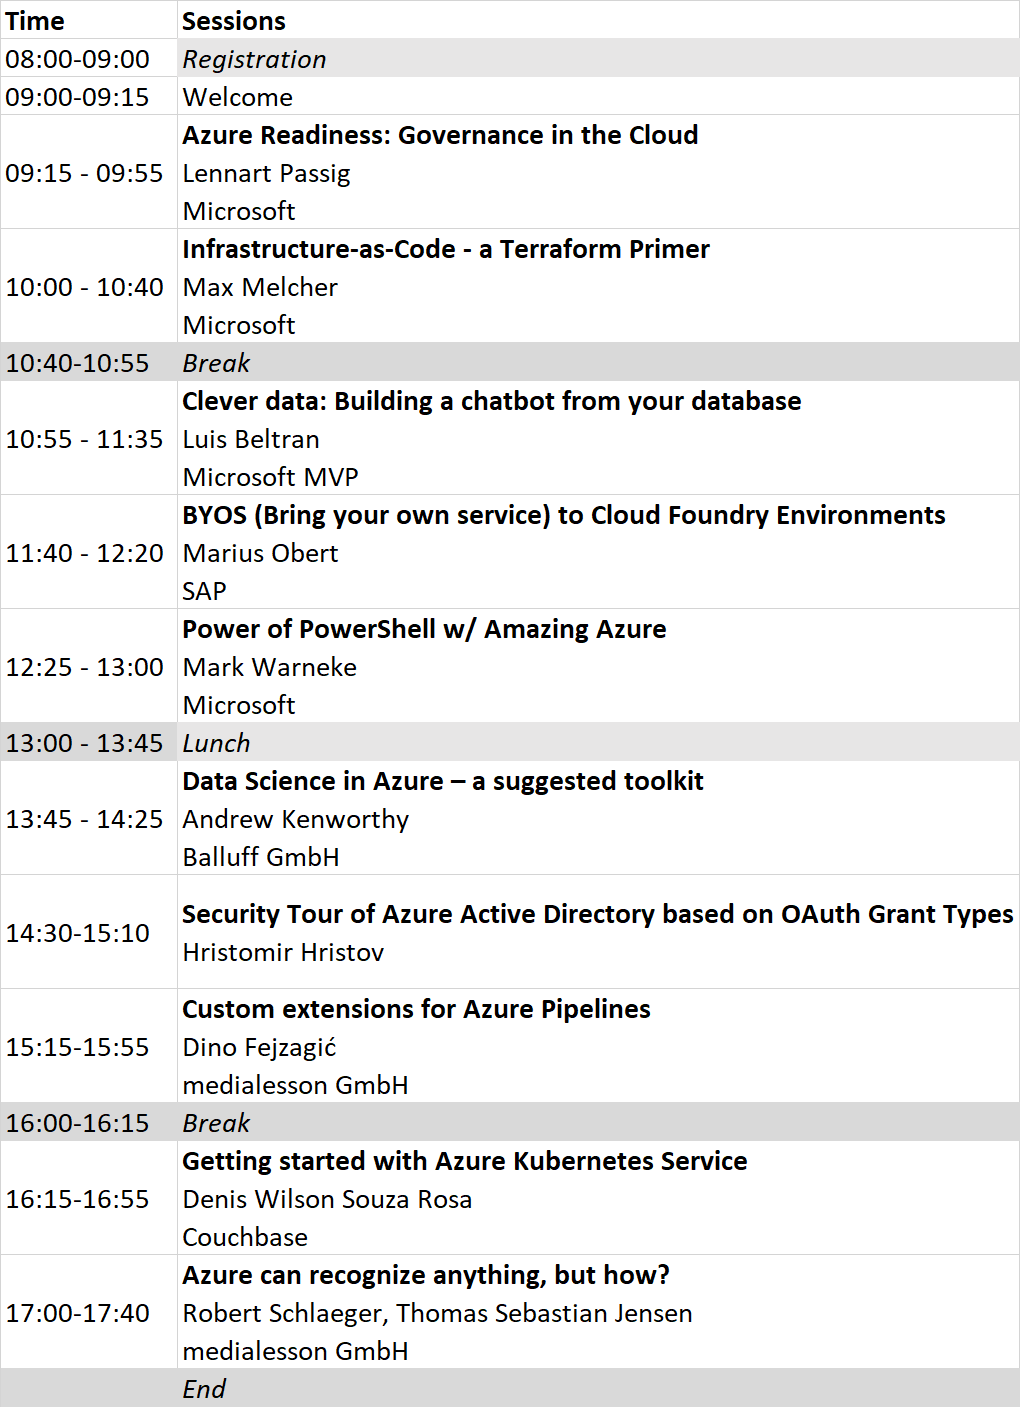 Global Azure Bootcamp Agenda